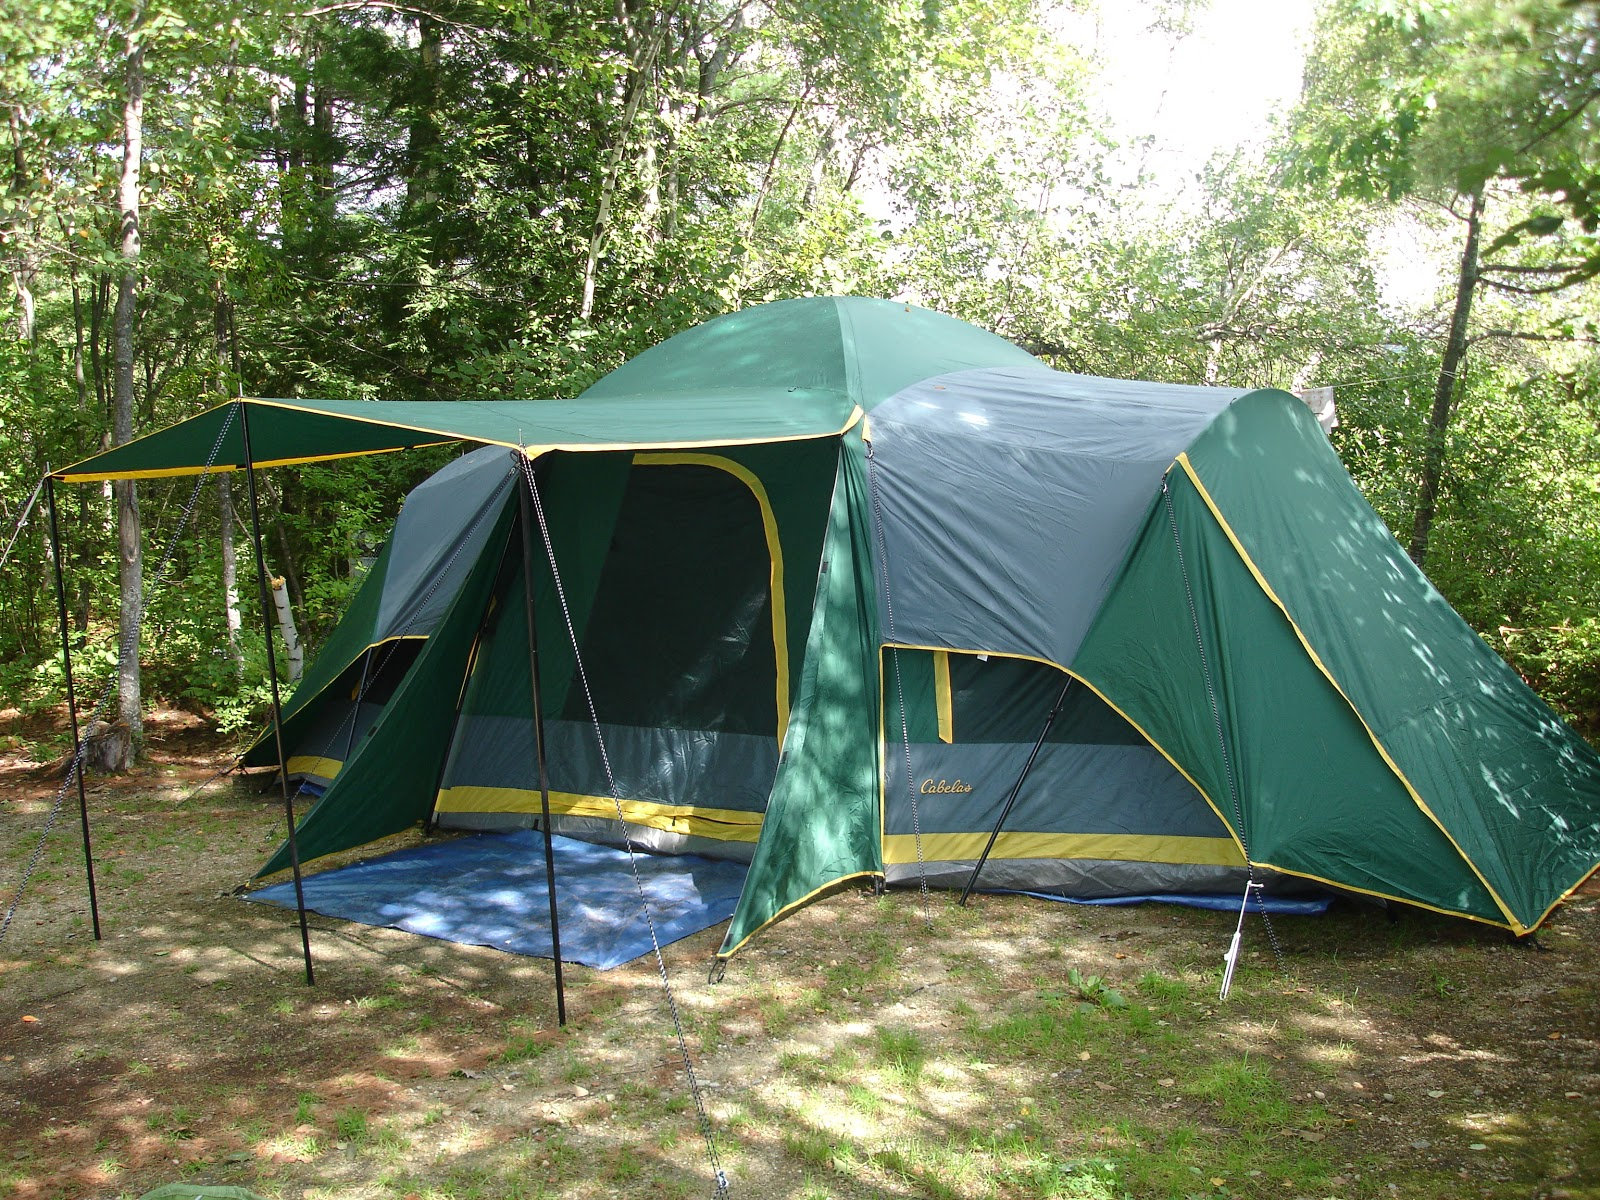 Cabelau0027s cabin tent. & Maine Outdoor Living: Tents DO Keep You Dry in the Rain when ...